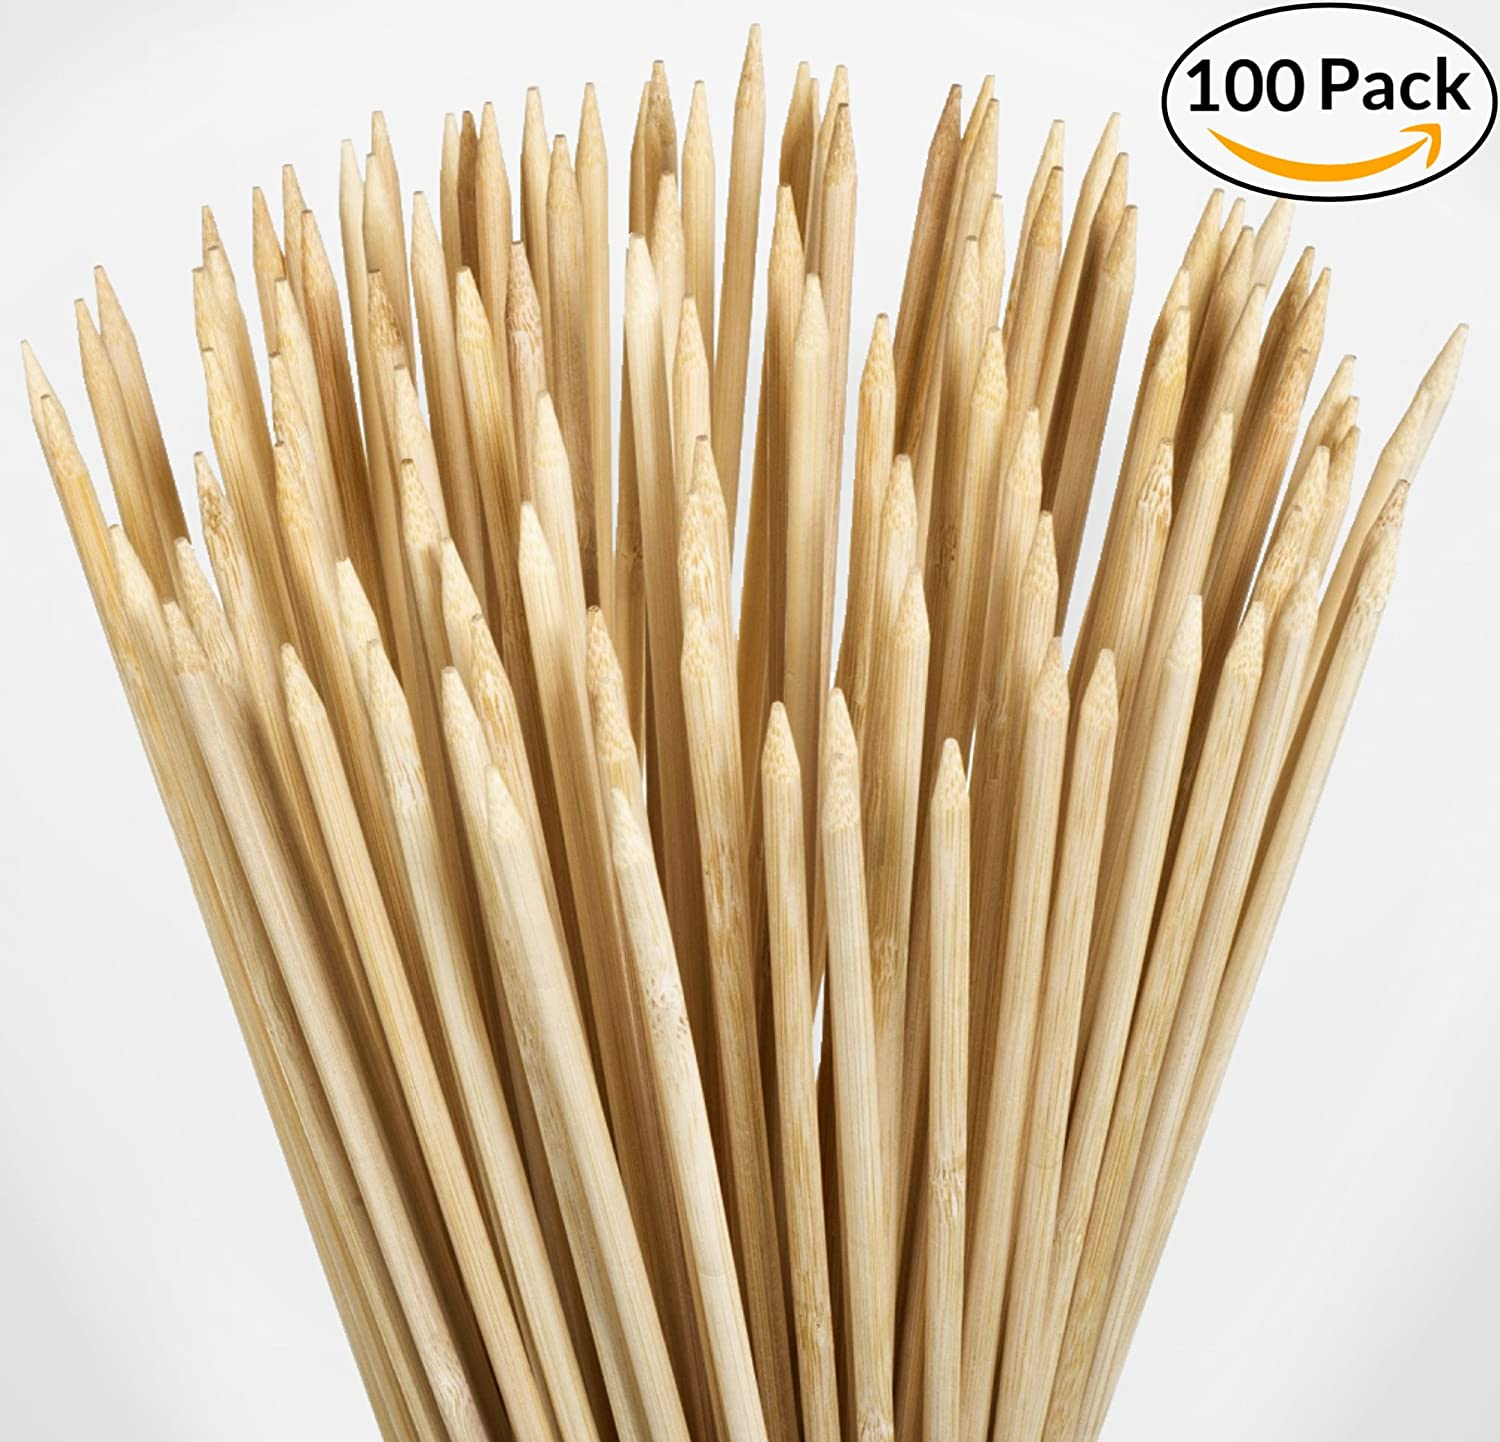 """100 Pack - 36"""" Bamboo Marshmallow Roasting Sticks, Skewers - Hot Dog, Smores, BBQ, Kabobs, Boudin, Sausage. Camp Fire, Camping Stix. STRONGEST ON AMAZON 5.5mm & 3FT LONG - Wooden S'mores Set"""